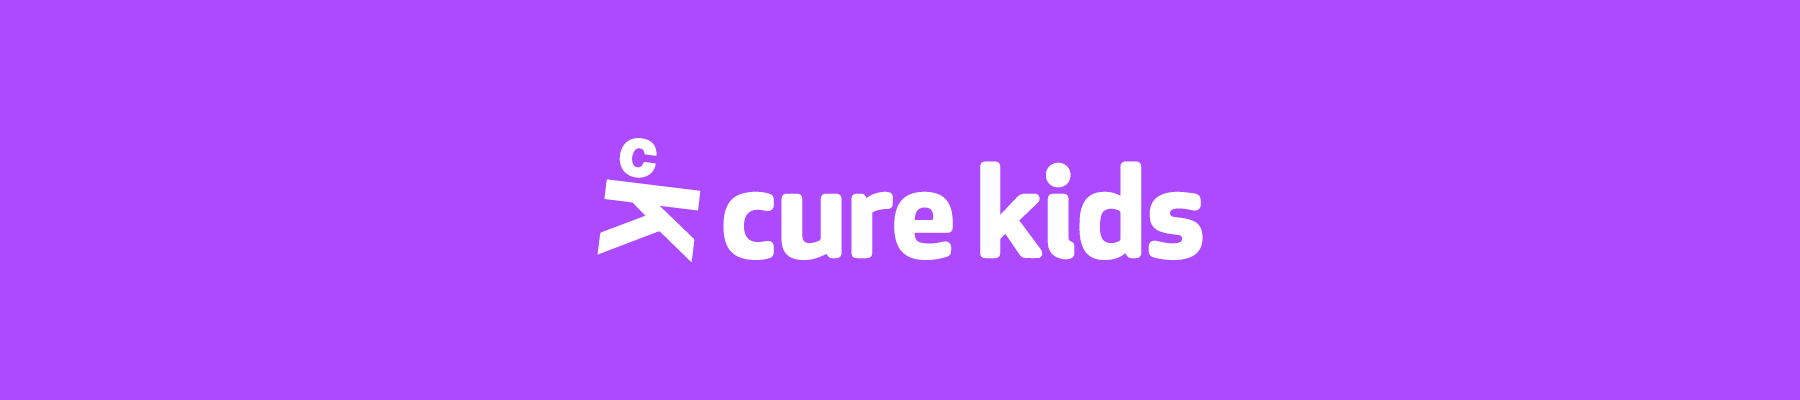 cure-kids-banner